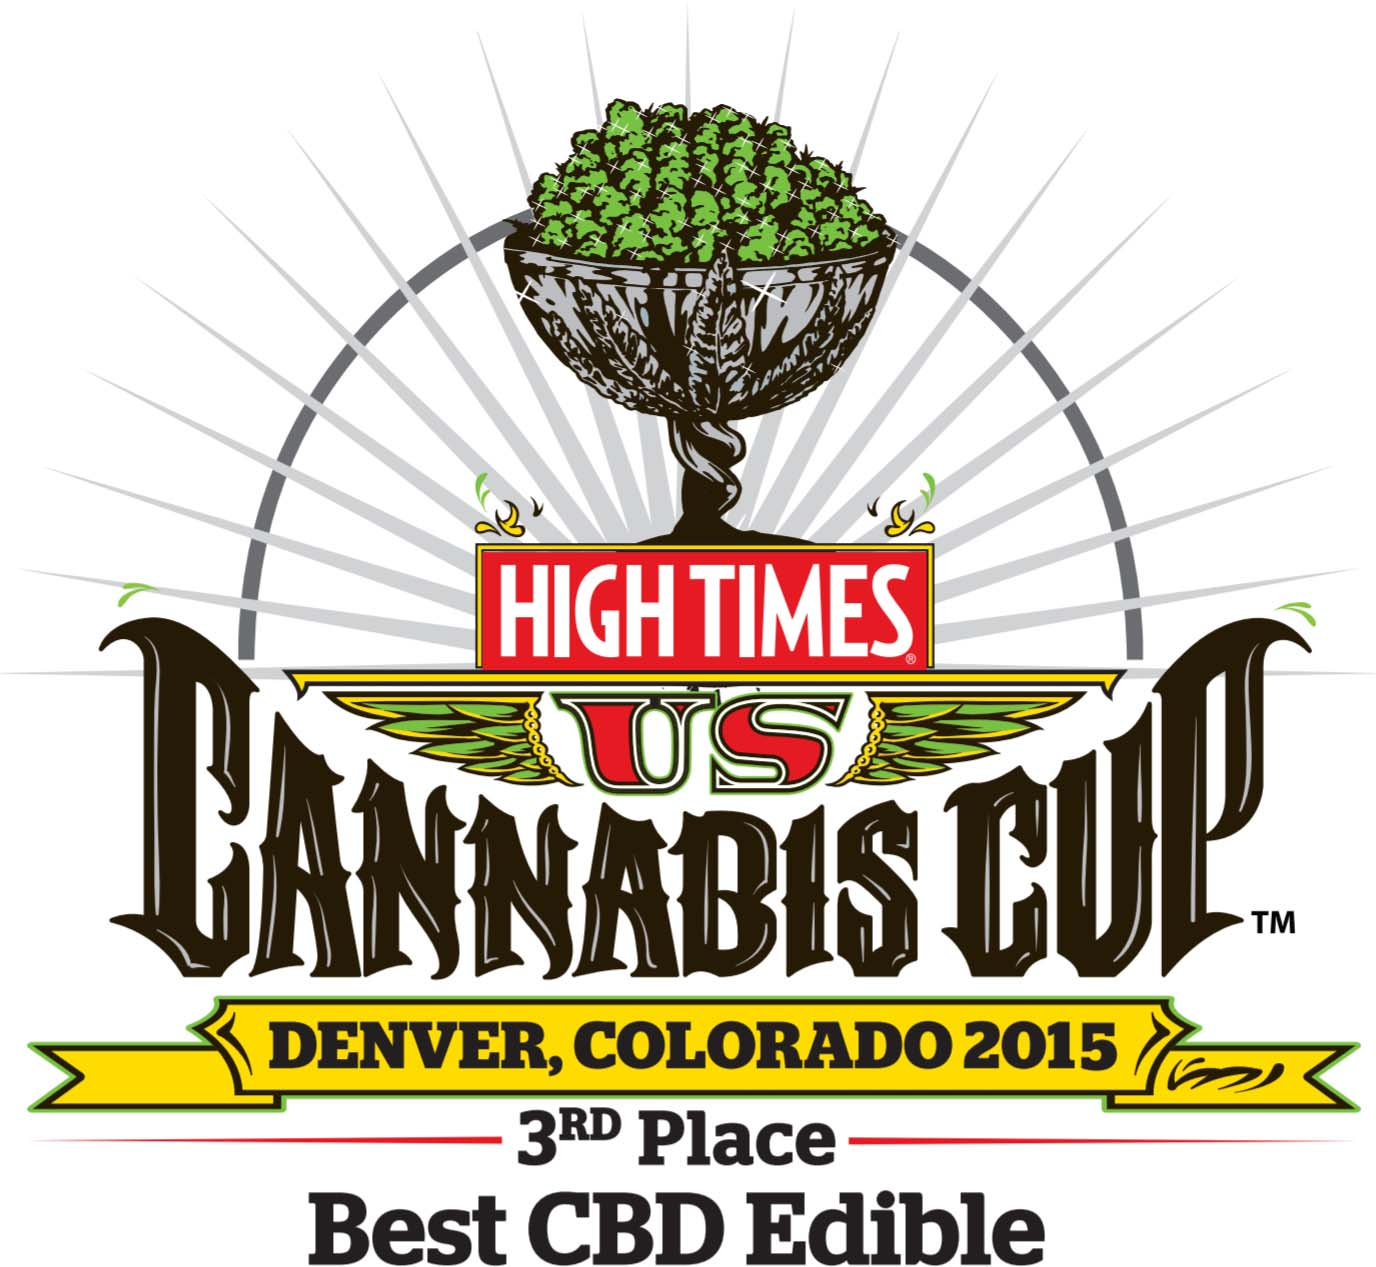 3rd place winner of the 2015 High Times Cannabis Cup Colorado